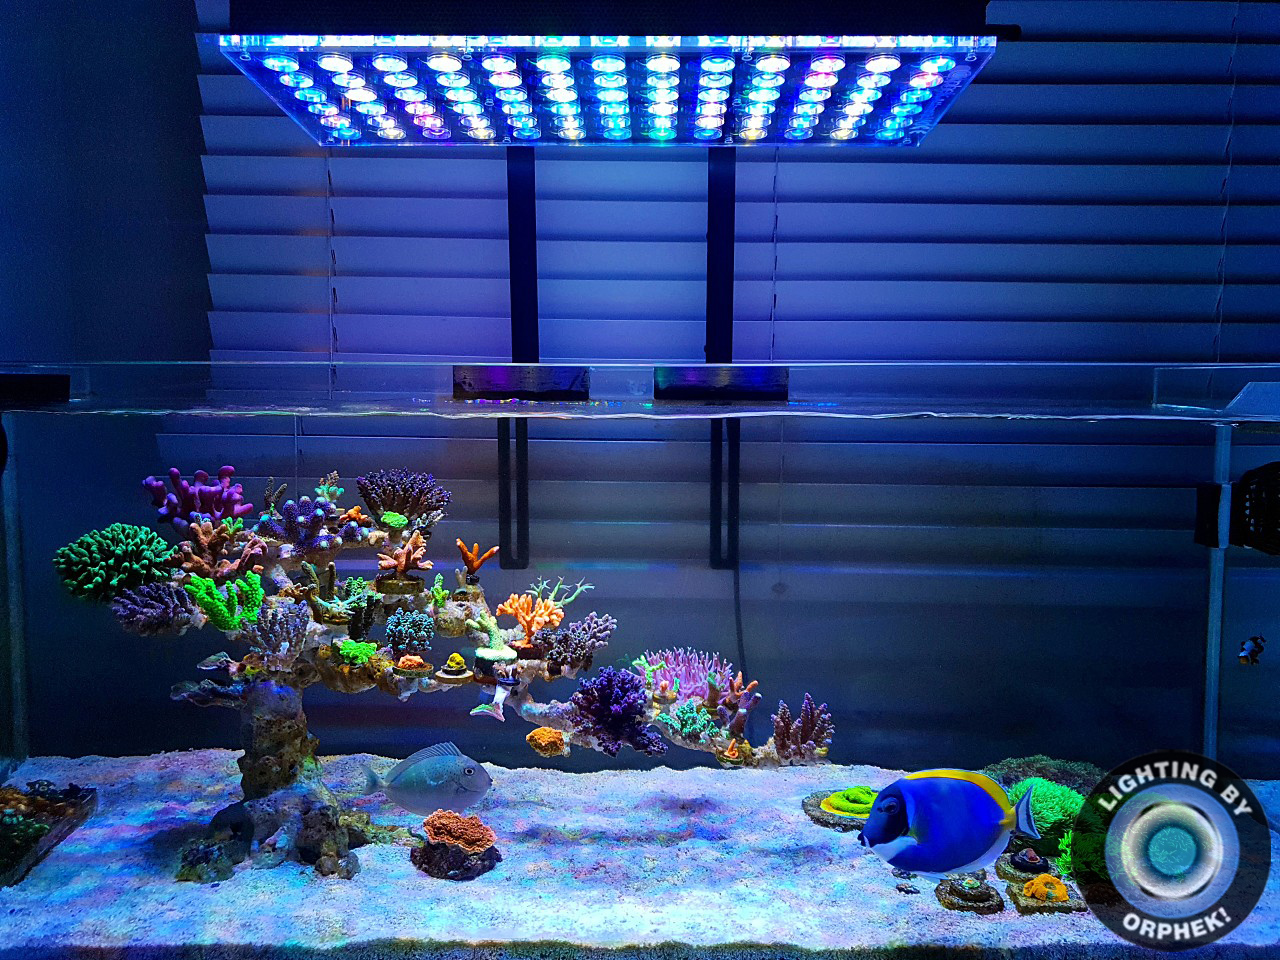 Orphek Reefscaping Showcases Beautiful tanks